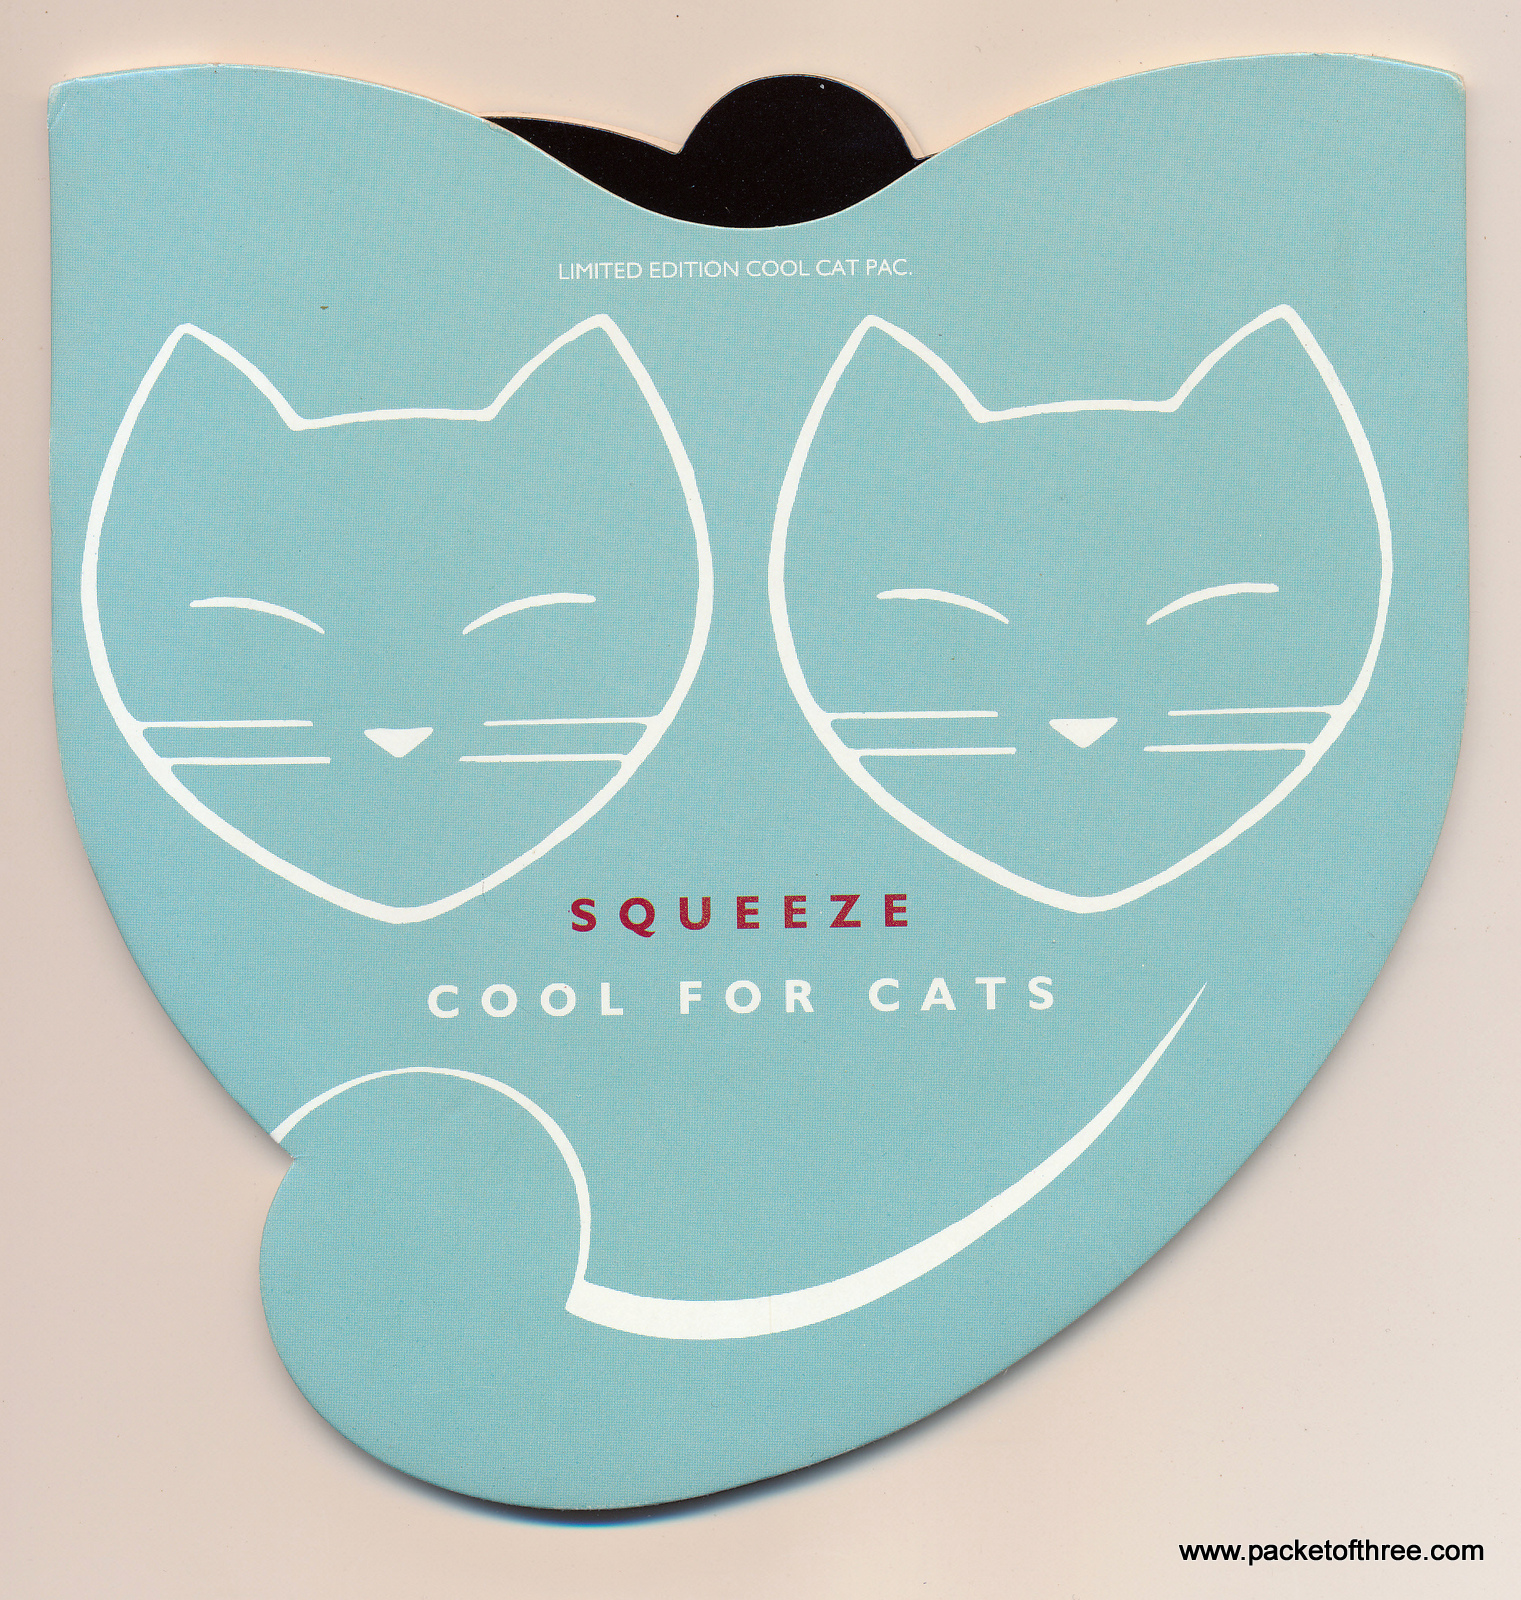 Cool For Cats - CD Single - cat pack